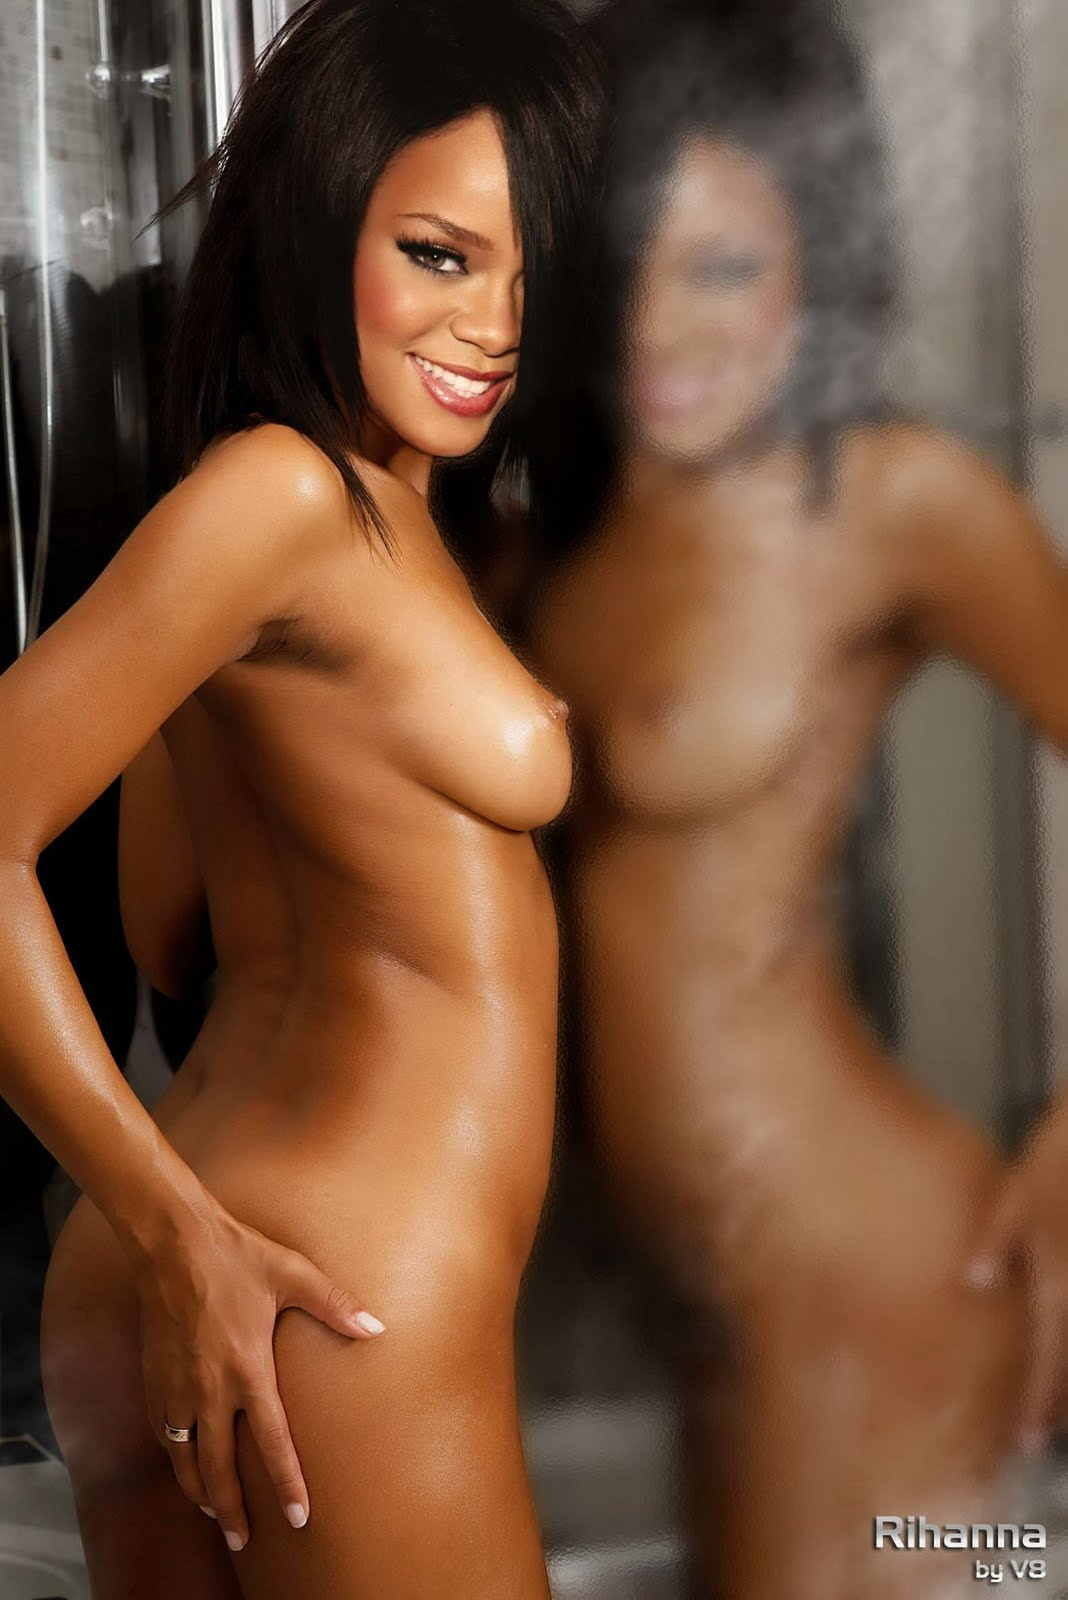 Are not Rhianna nude pics uncensored sorry